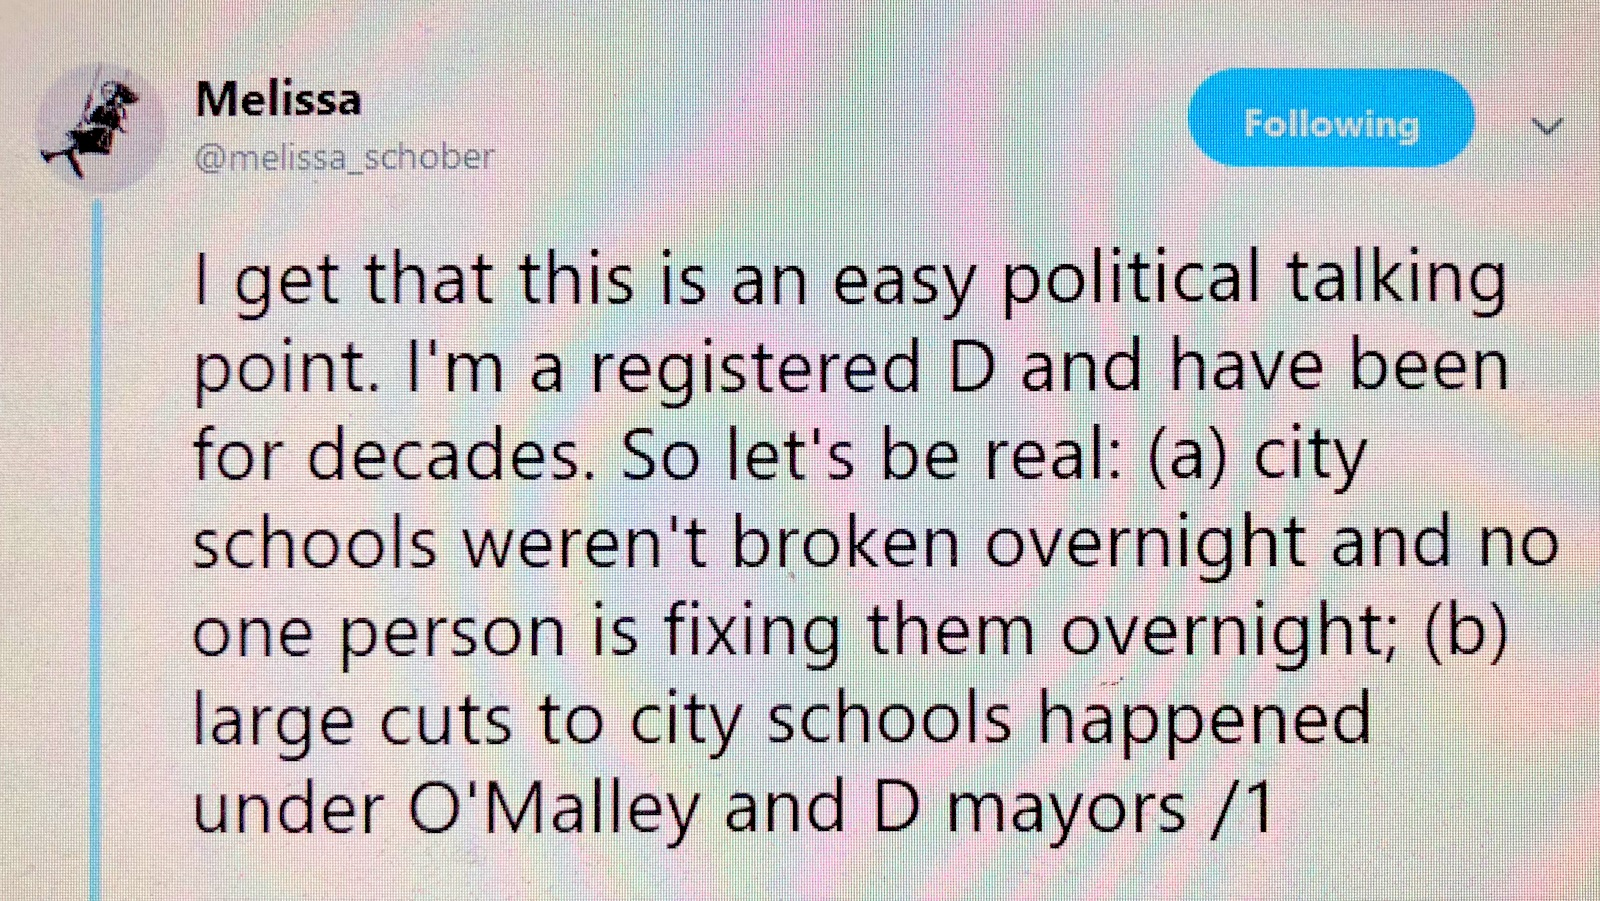 On the first day of the 2018-19 school year, what Baltimore parent Melissa Schober tweeted, with 72 schools closed early because of inasequate real estate.